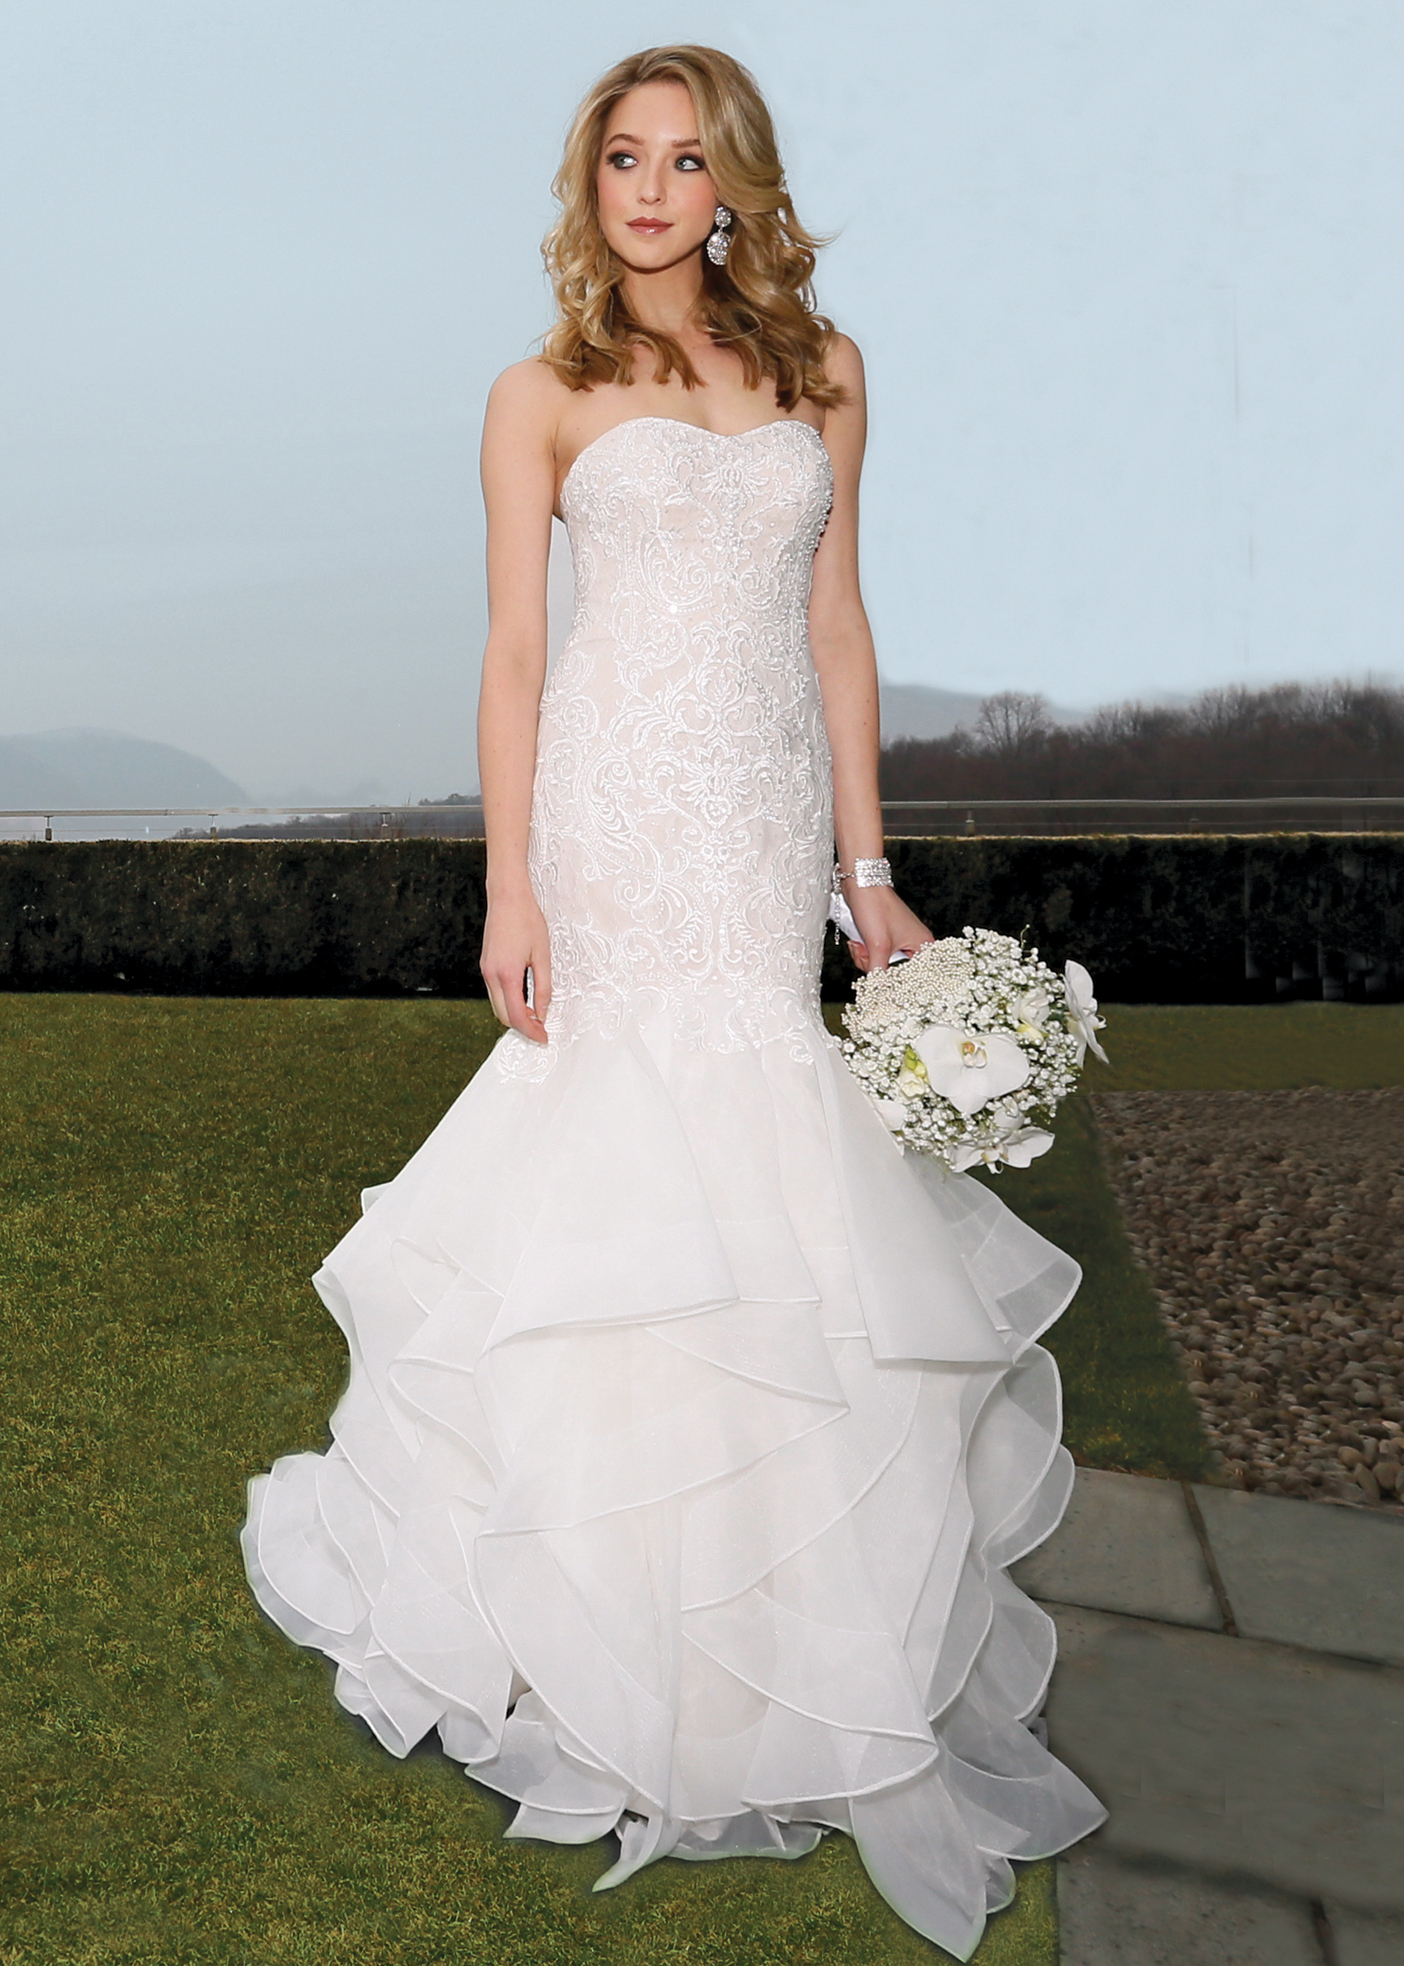 Trumpet dress bridal wedding gown by oleg cassini ny nj for Wedding dress designer oleg cassini